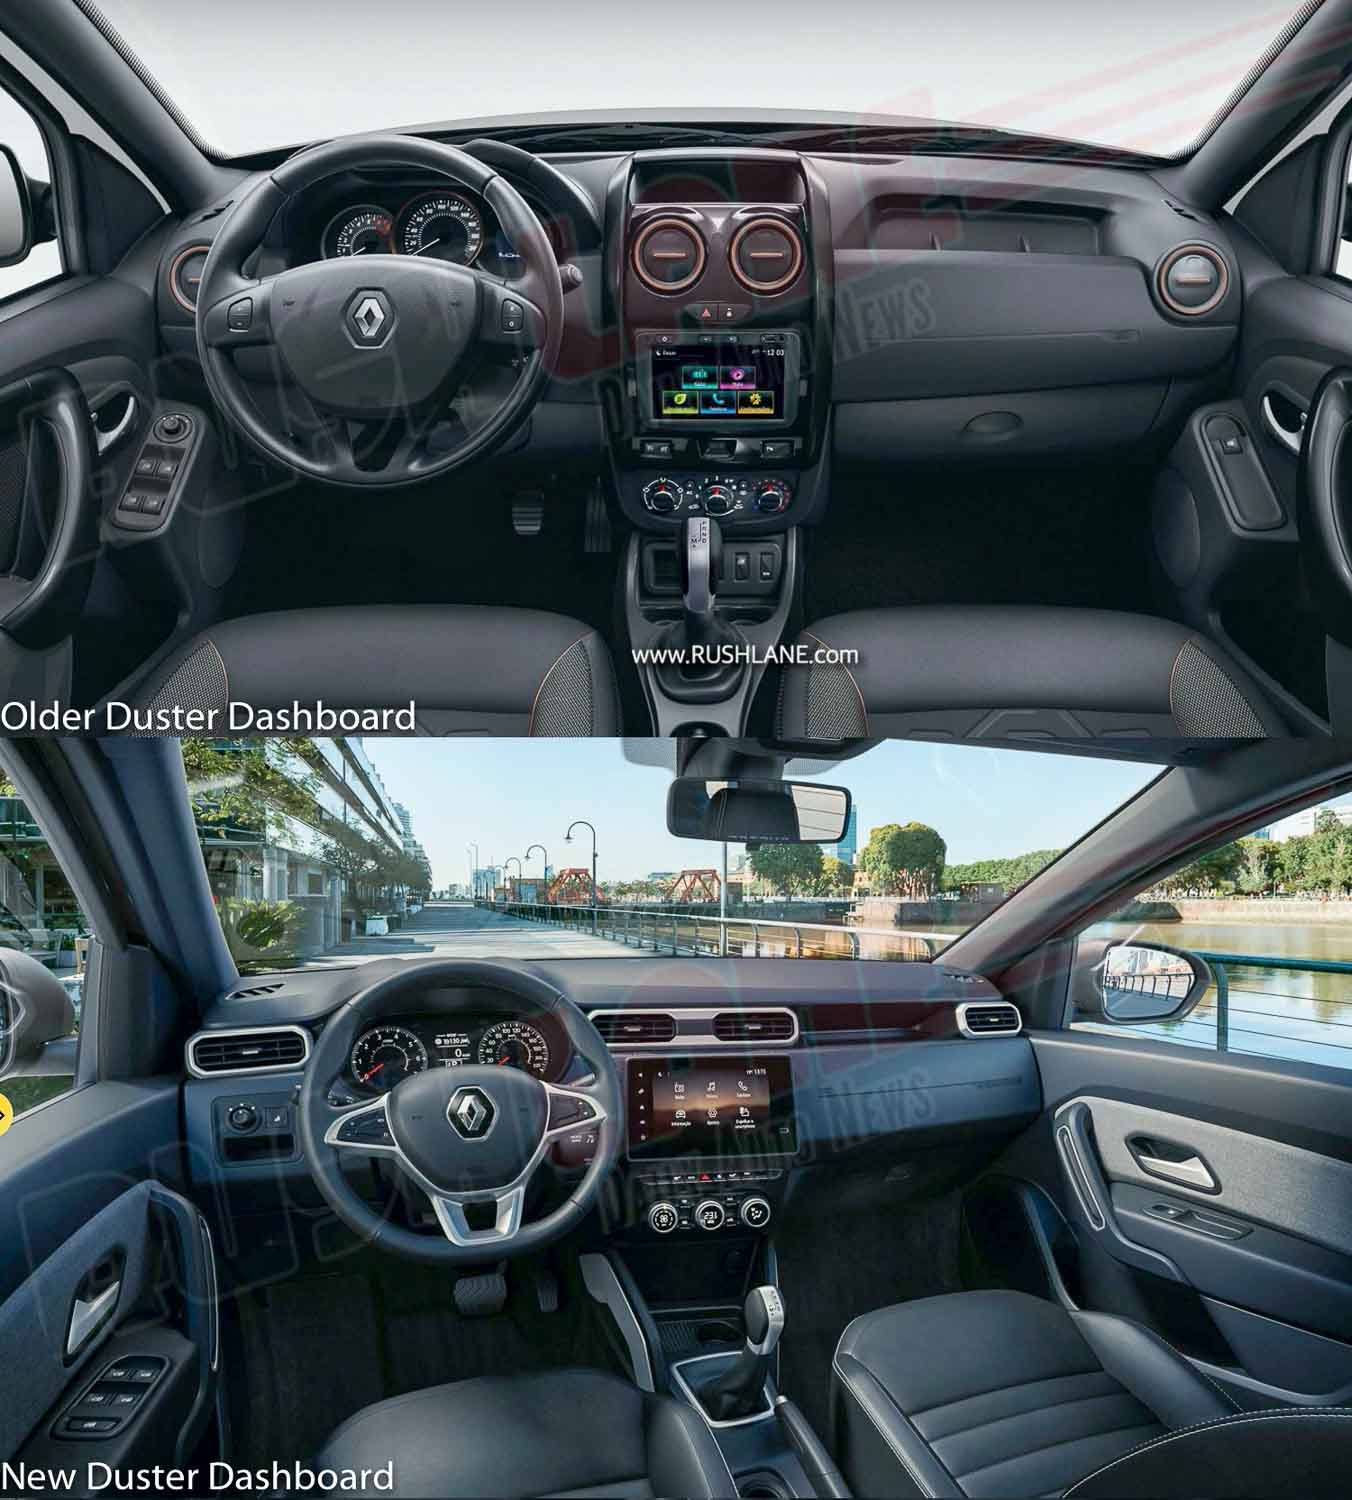 Renault Duster Interiors Old vs New